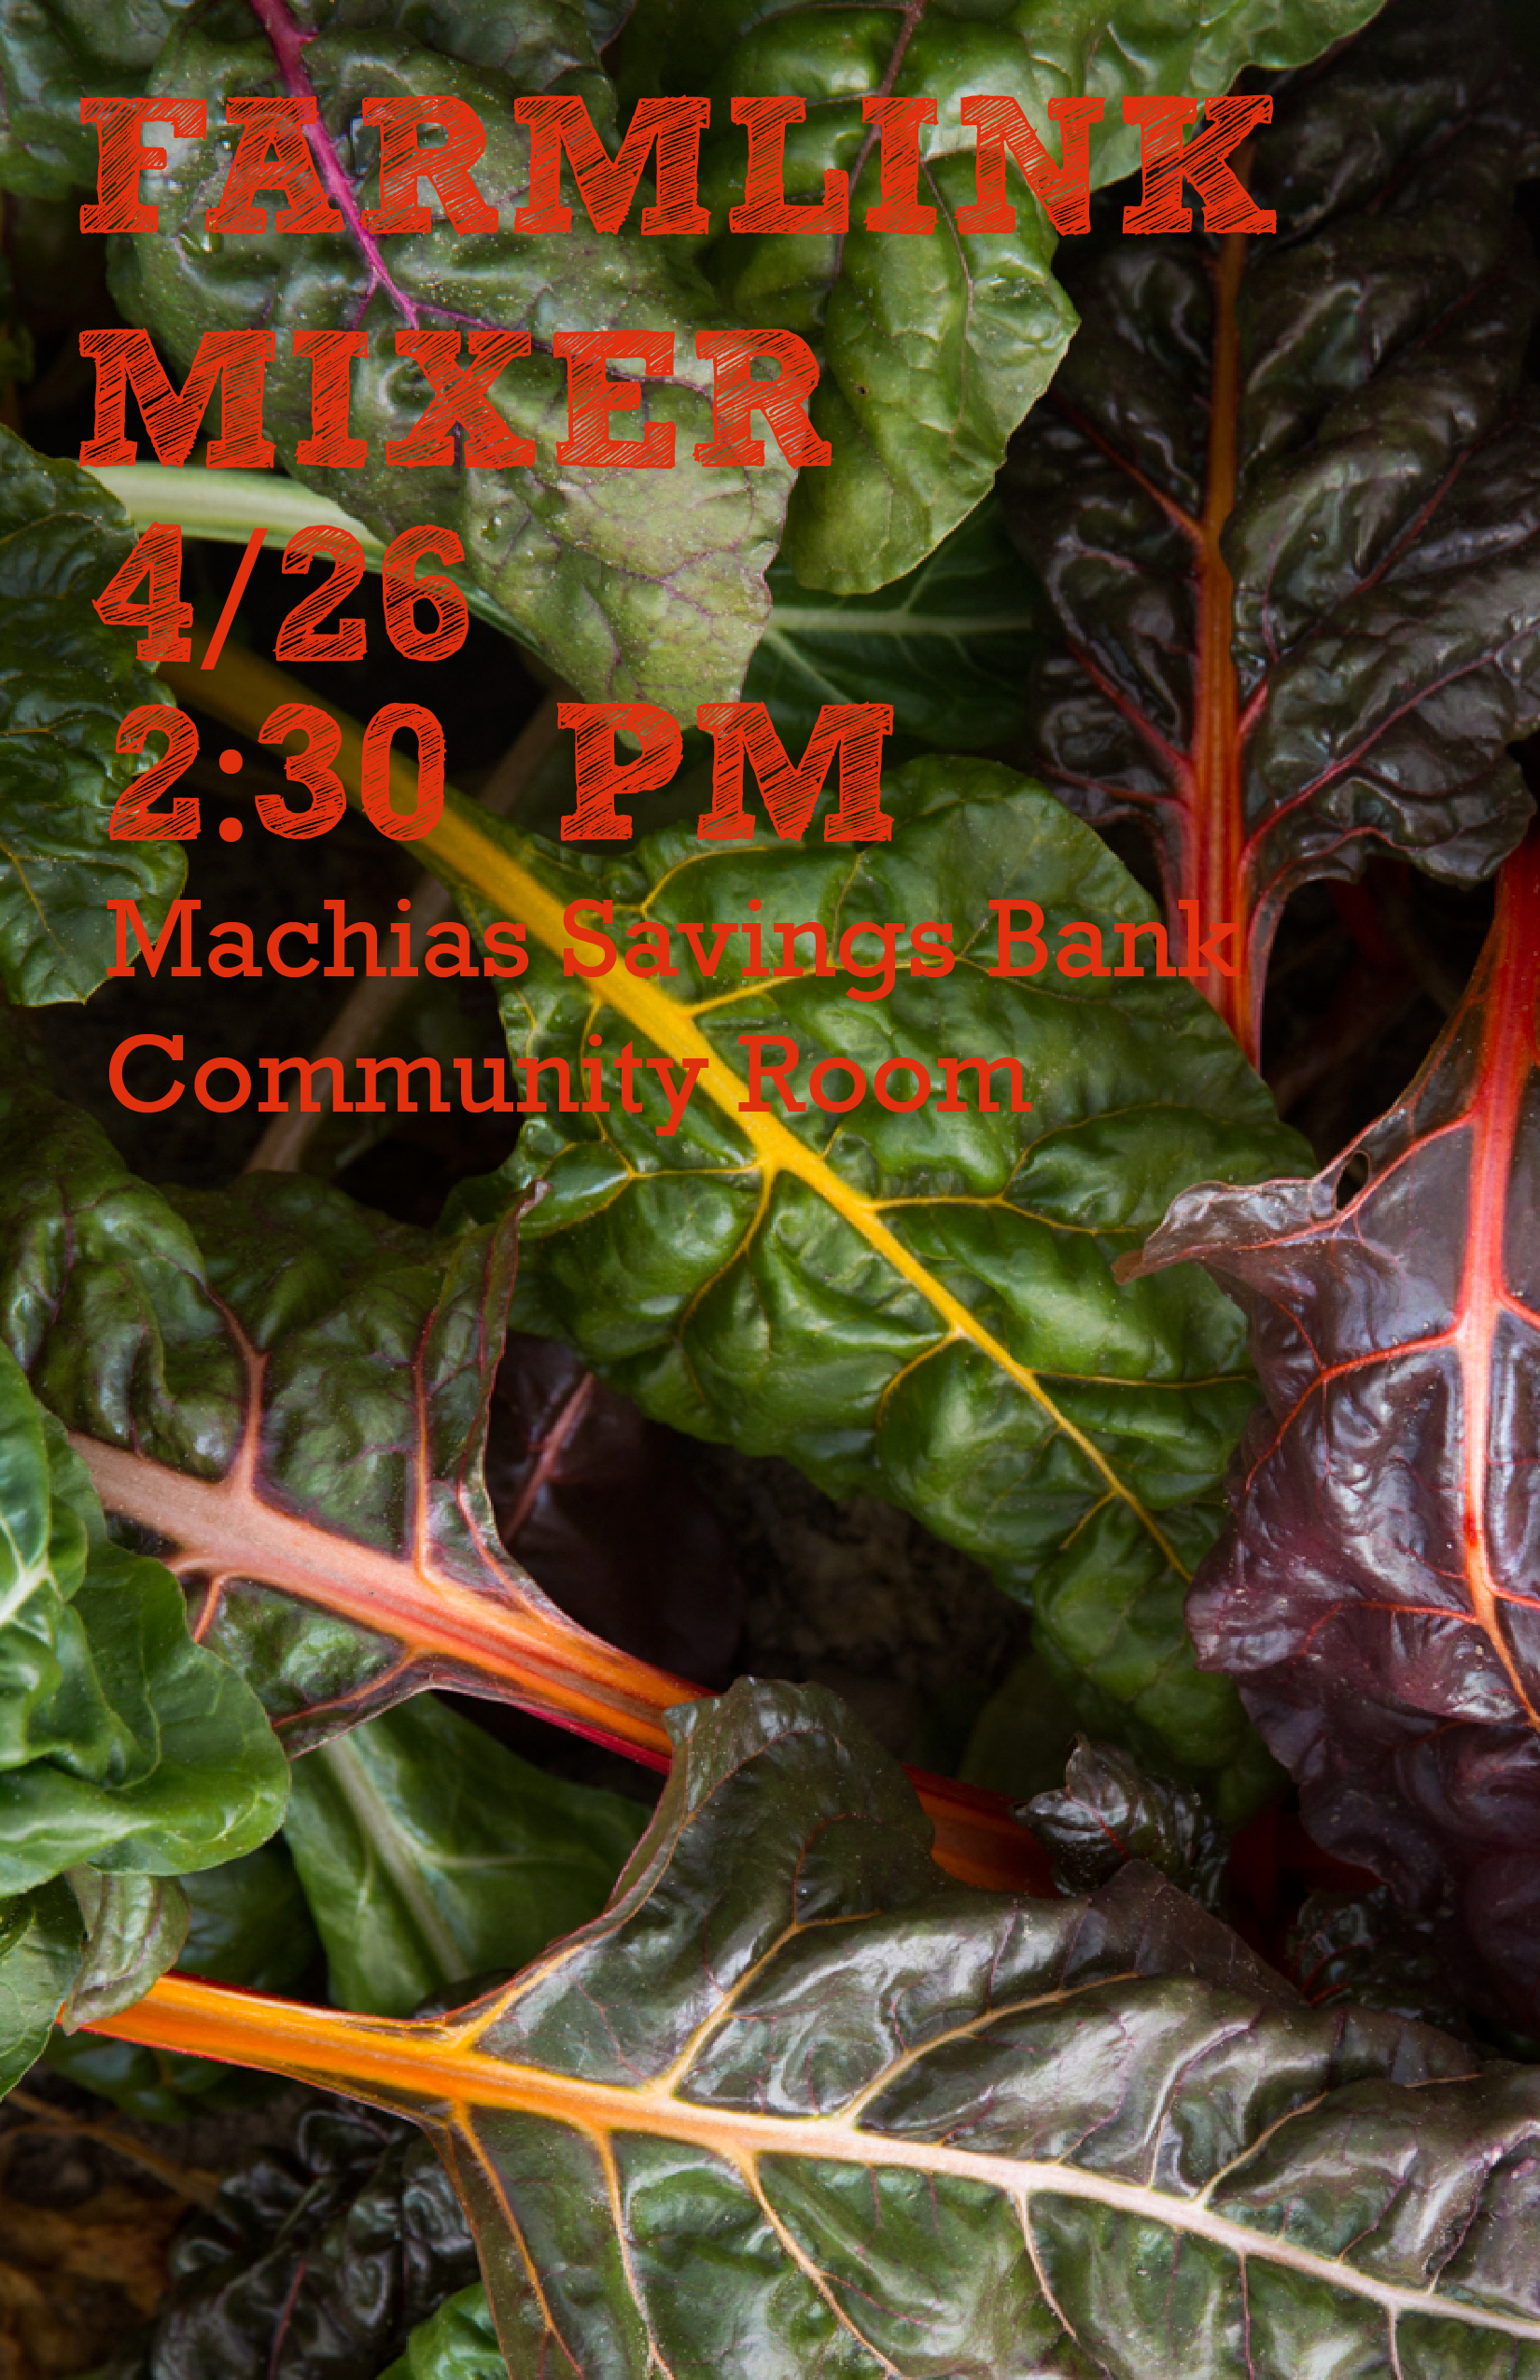 FarmLink Mixer Machias